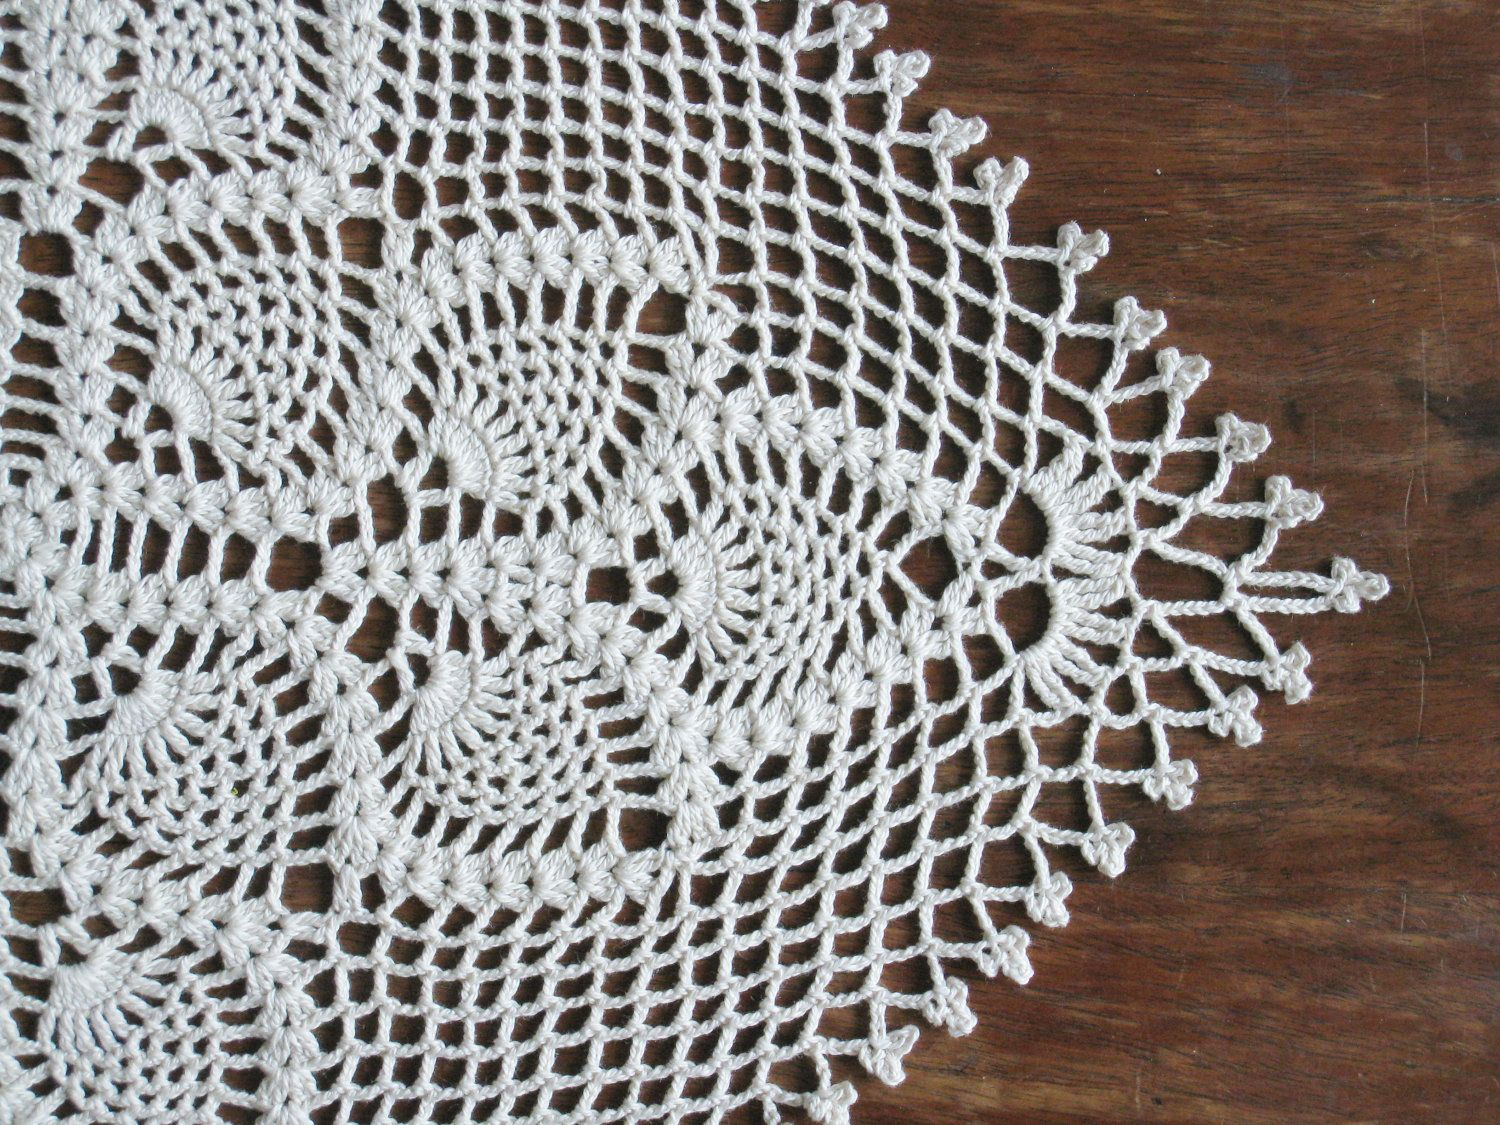 Crochet Square Table Runner Lace Table Cloth   Natural Shabby Chic Cottage  Table Decor Pineapple Pattern Bridal Shower Gift